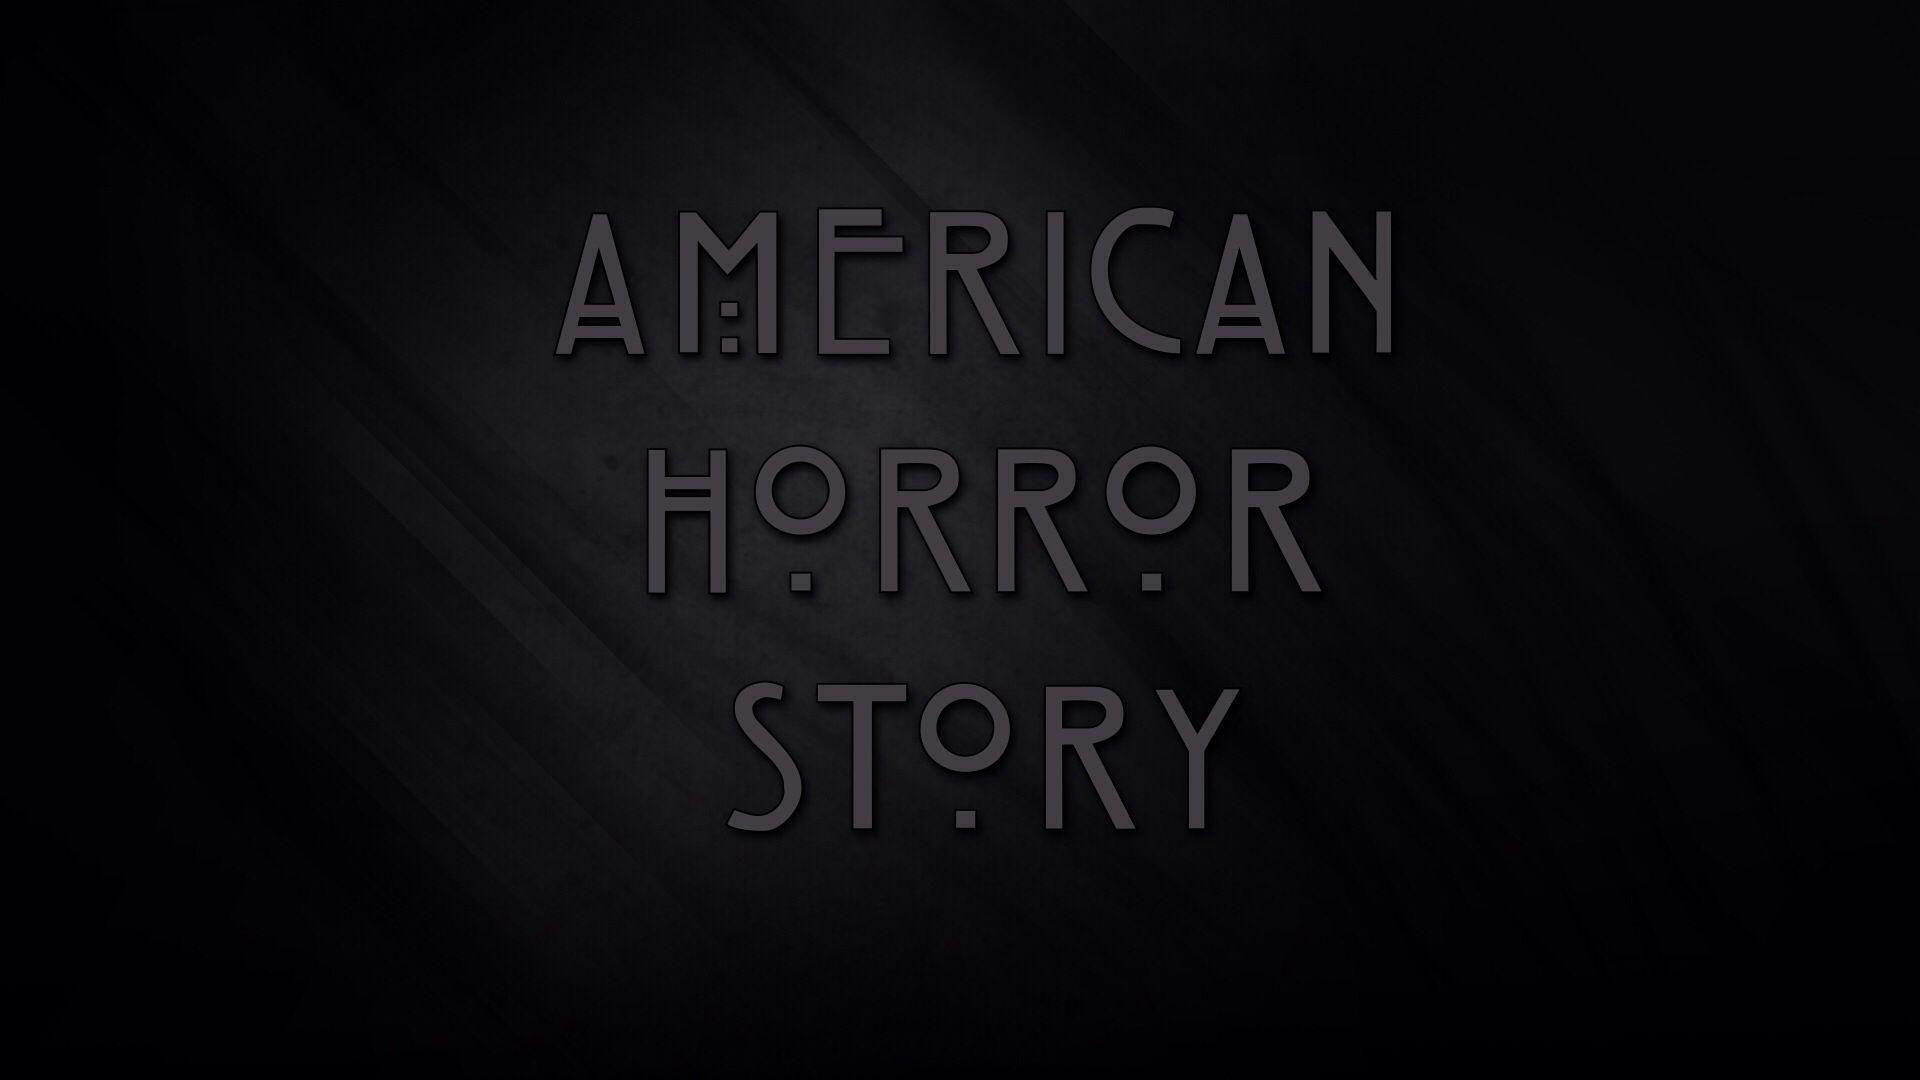 American Horror Story Wallpapers Top Free American Horror Story